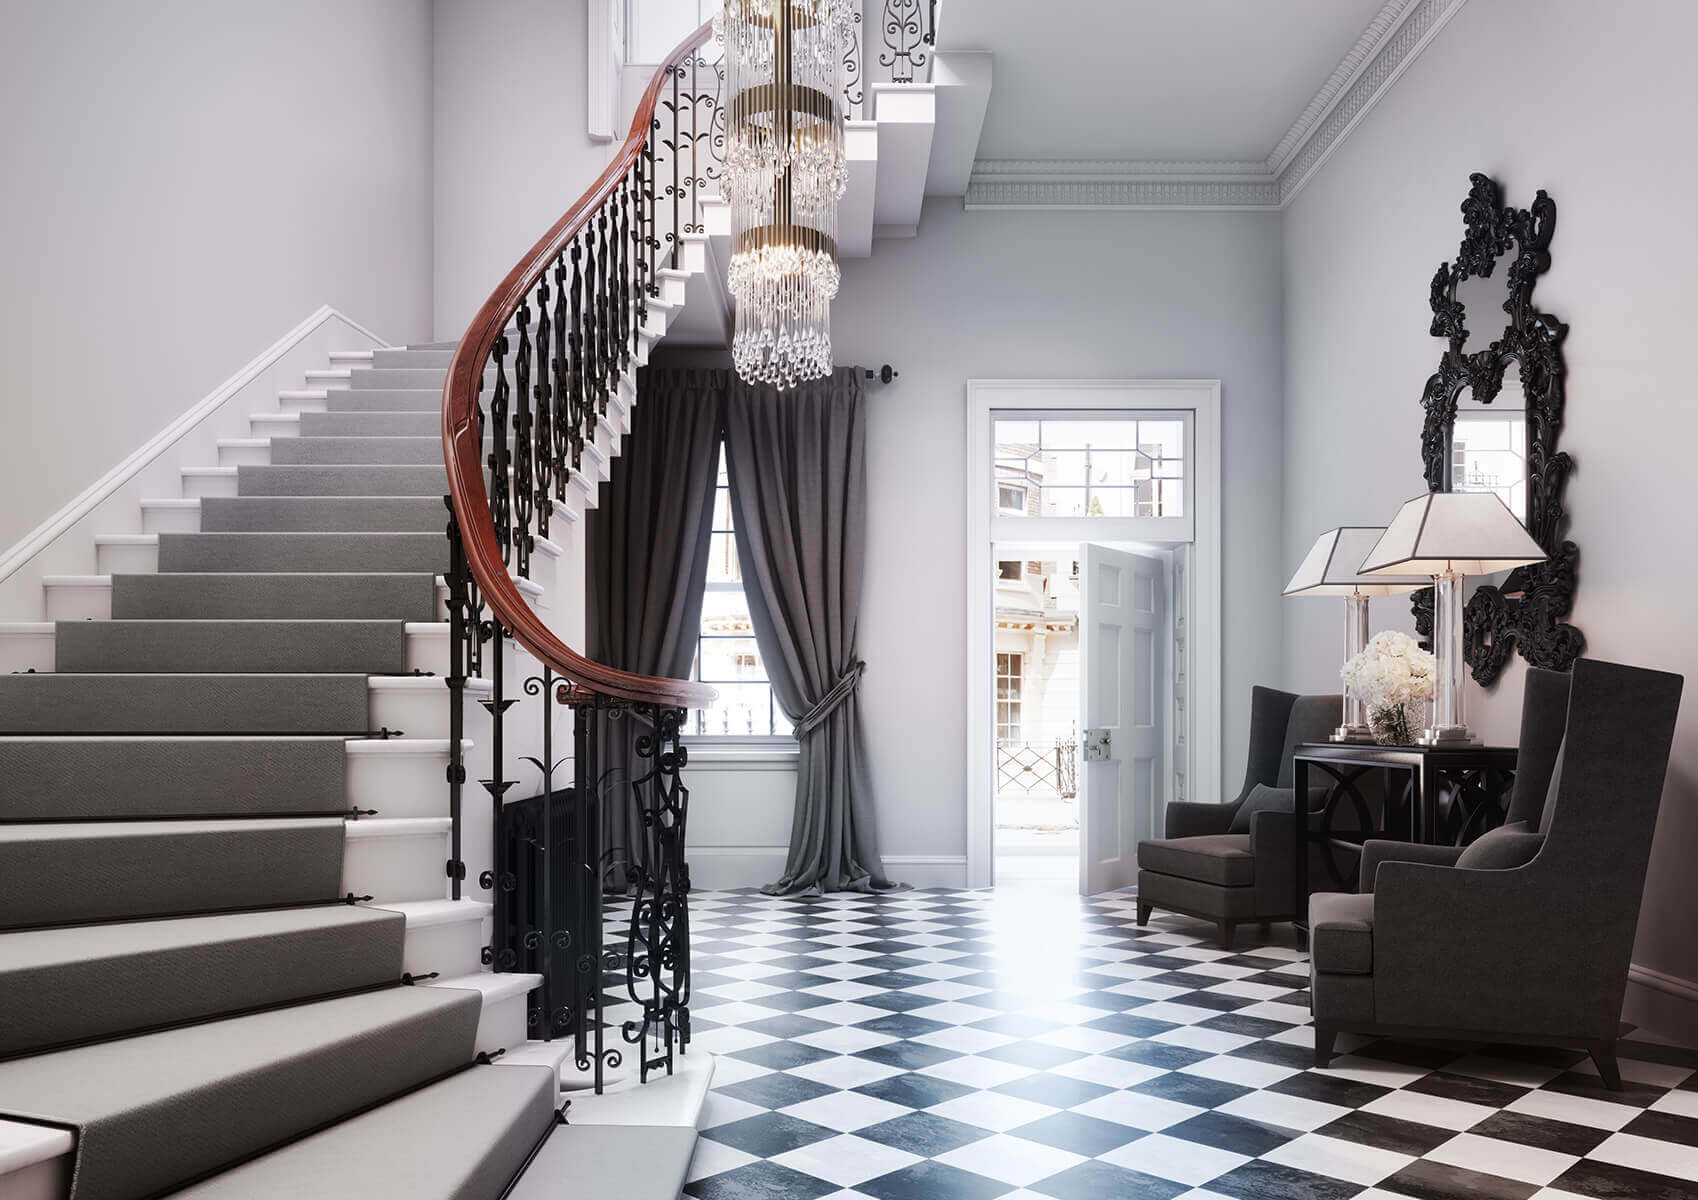 Mayfair Mansion – 'Britain's most expensive fixer-upper' architectural visualisation